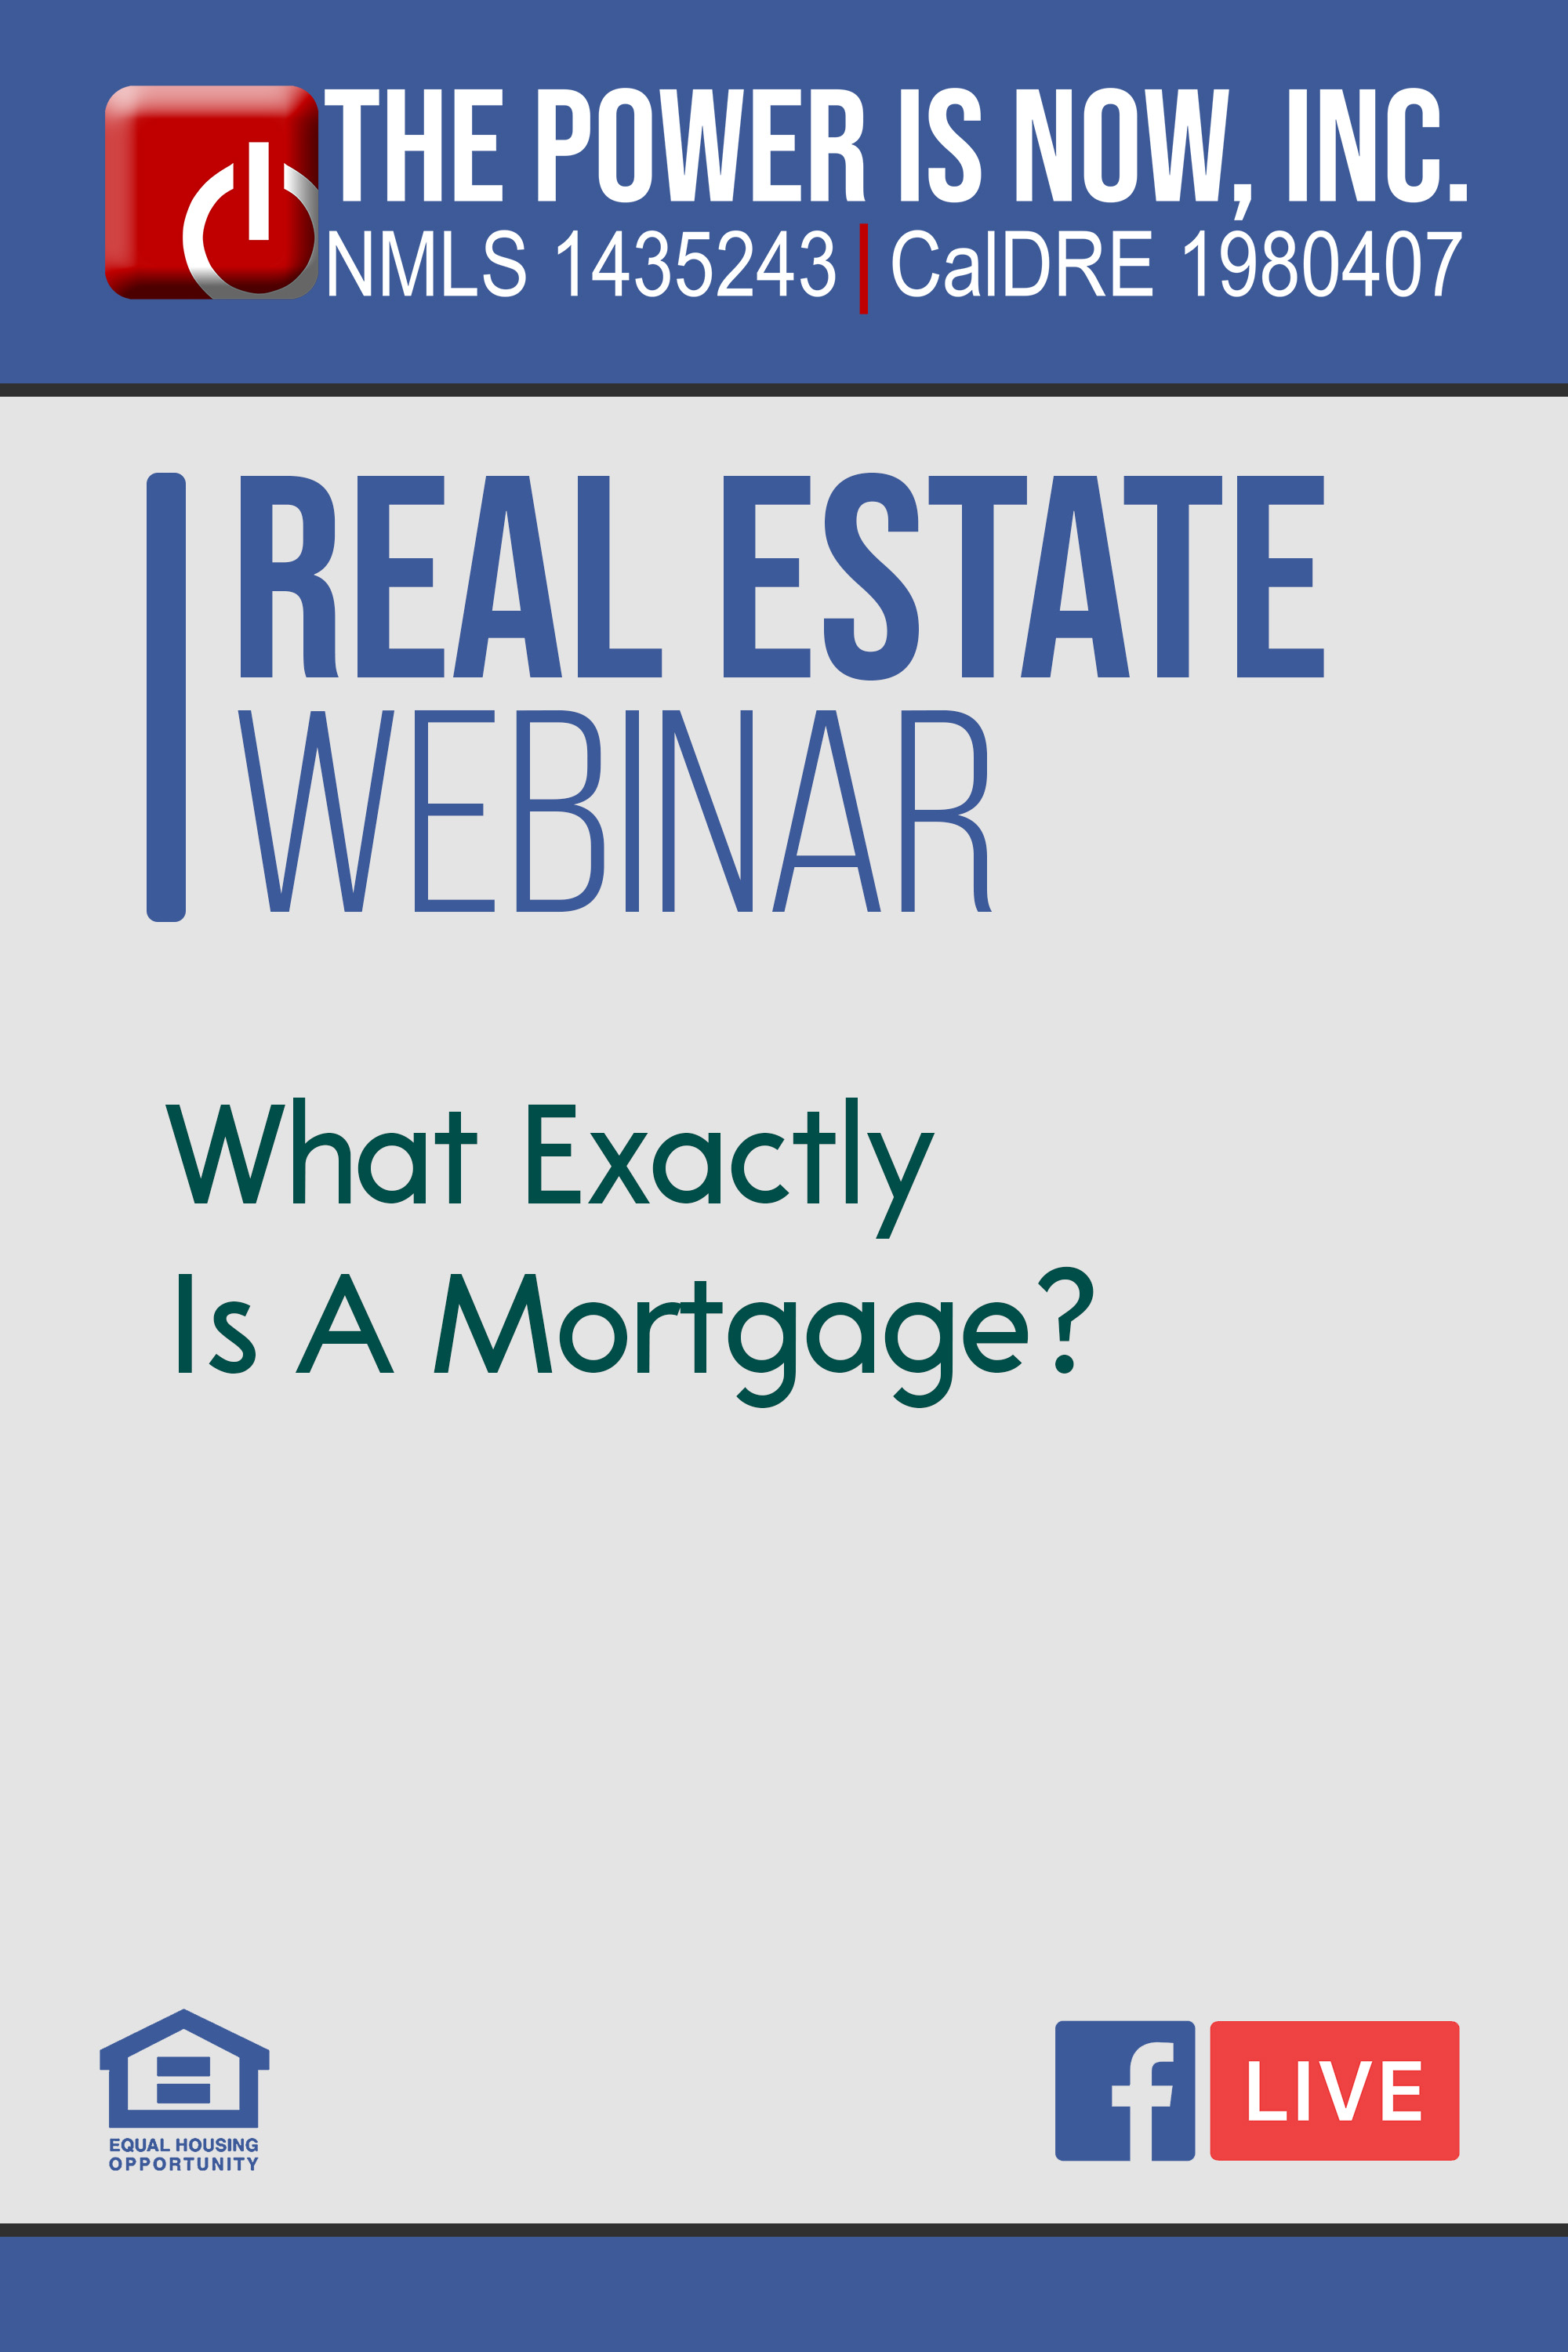 What Exactly Is A Mortgage?